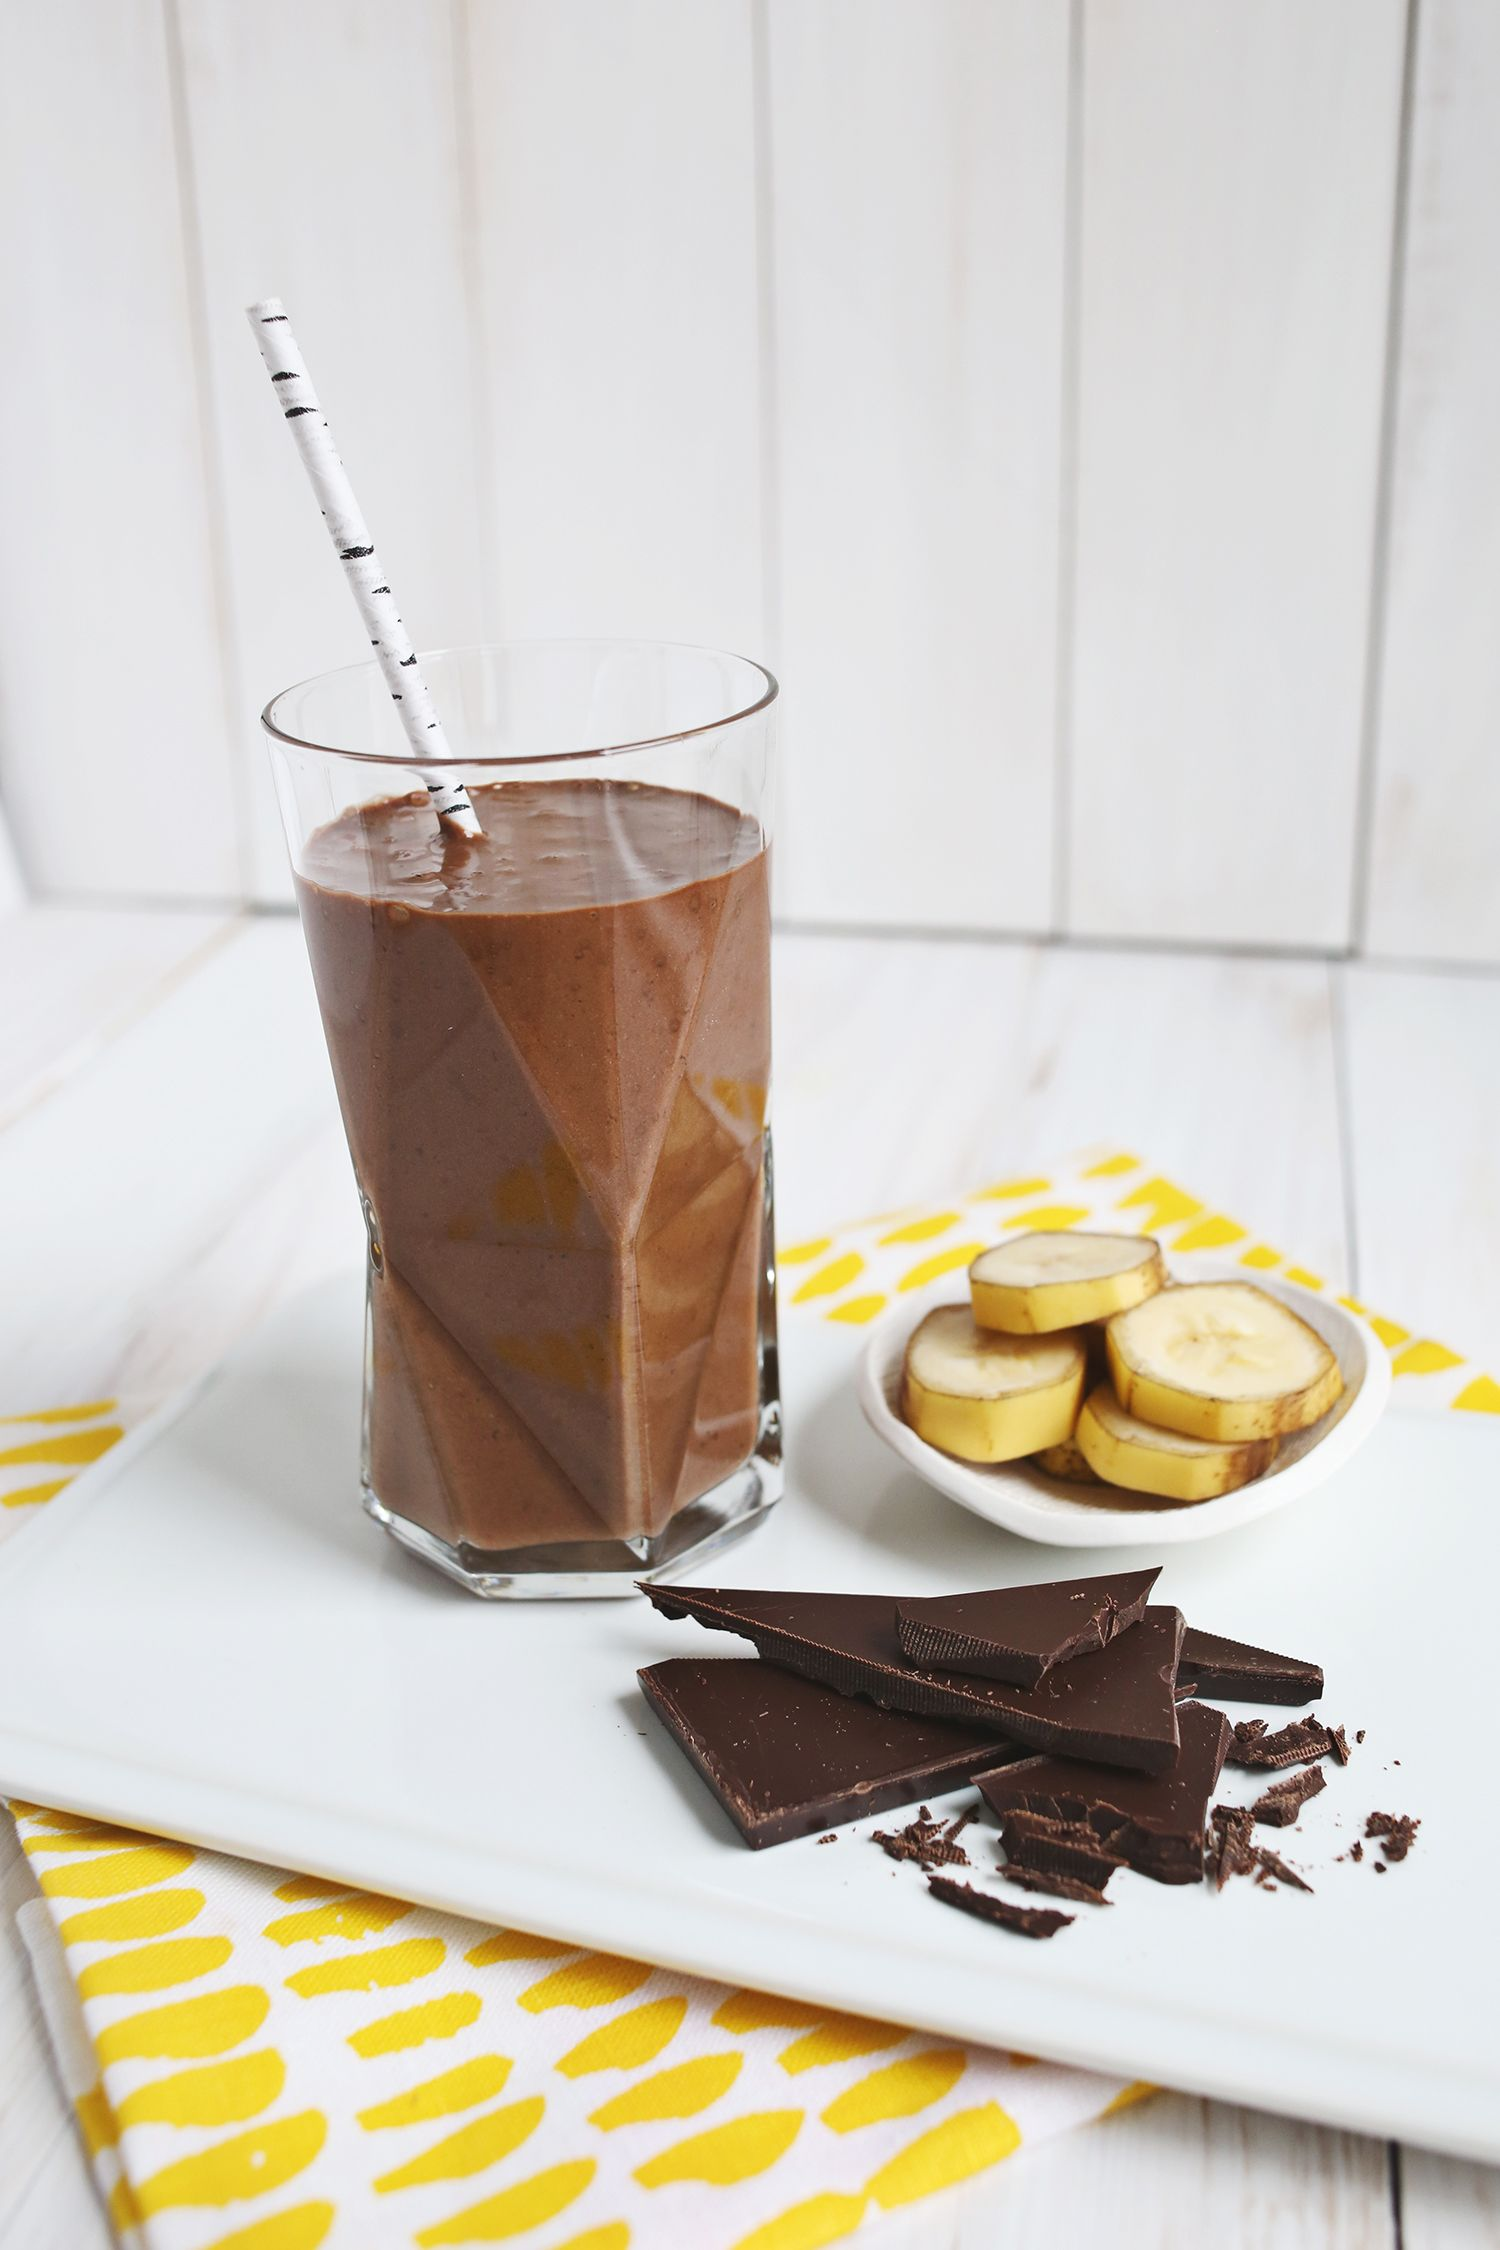 Healthy Chocolate Banana Shake - A Beautiful Mess #healthychocolateshakes